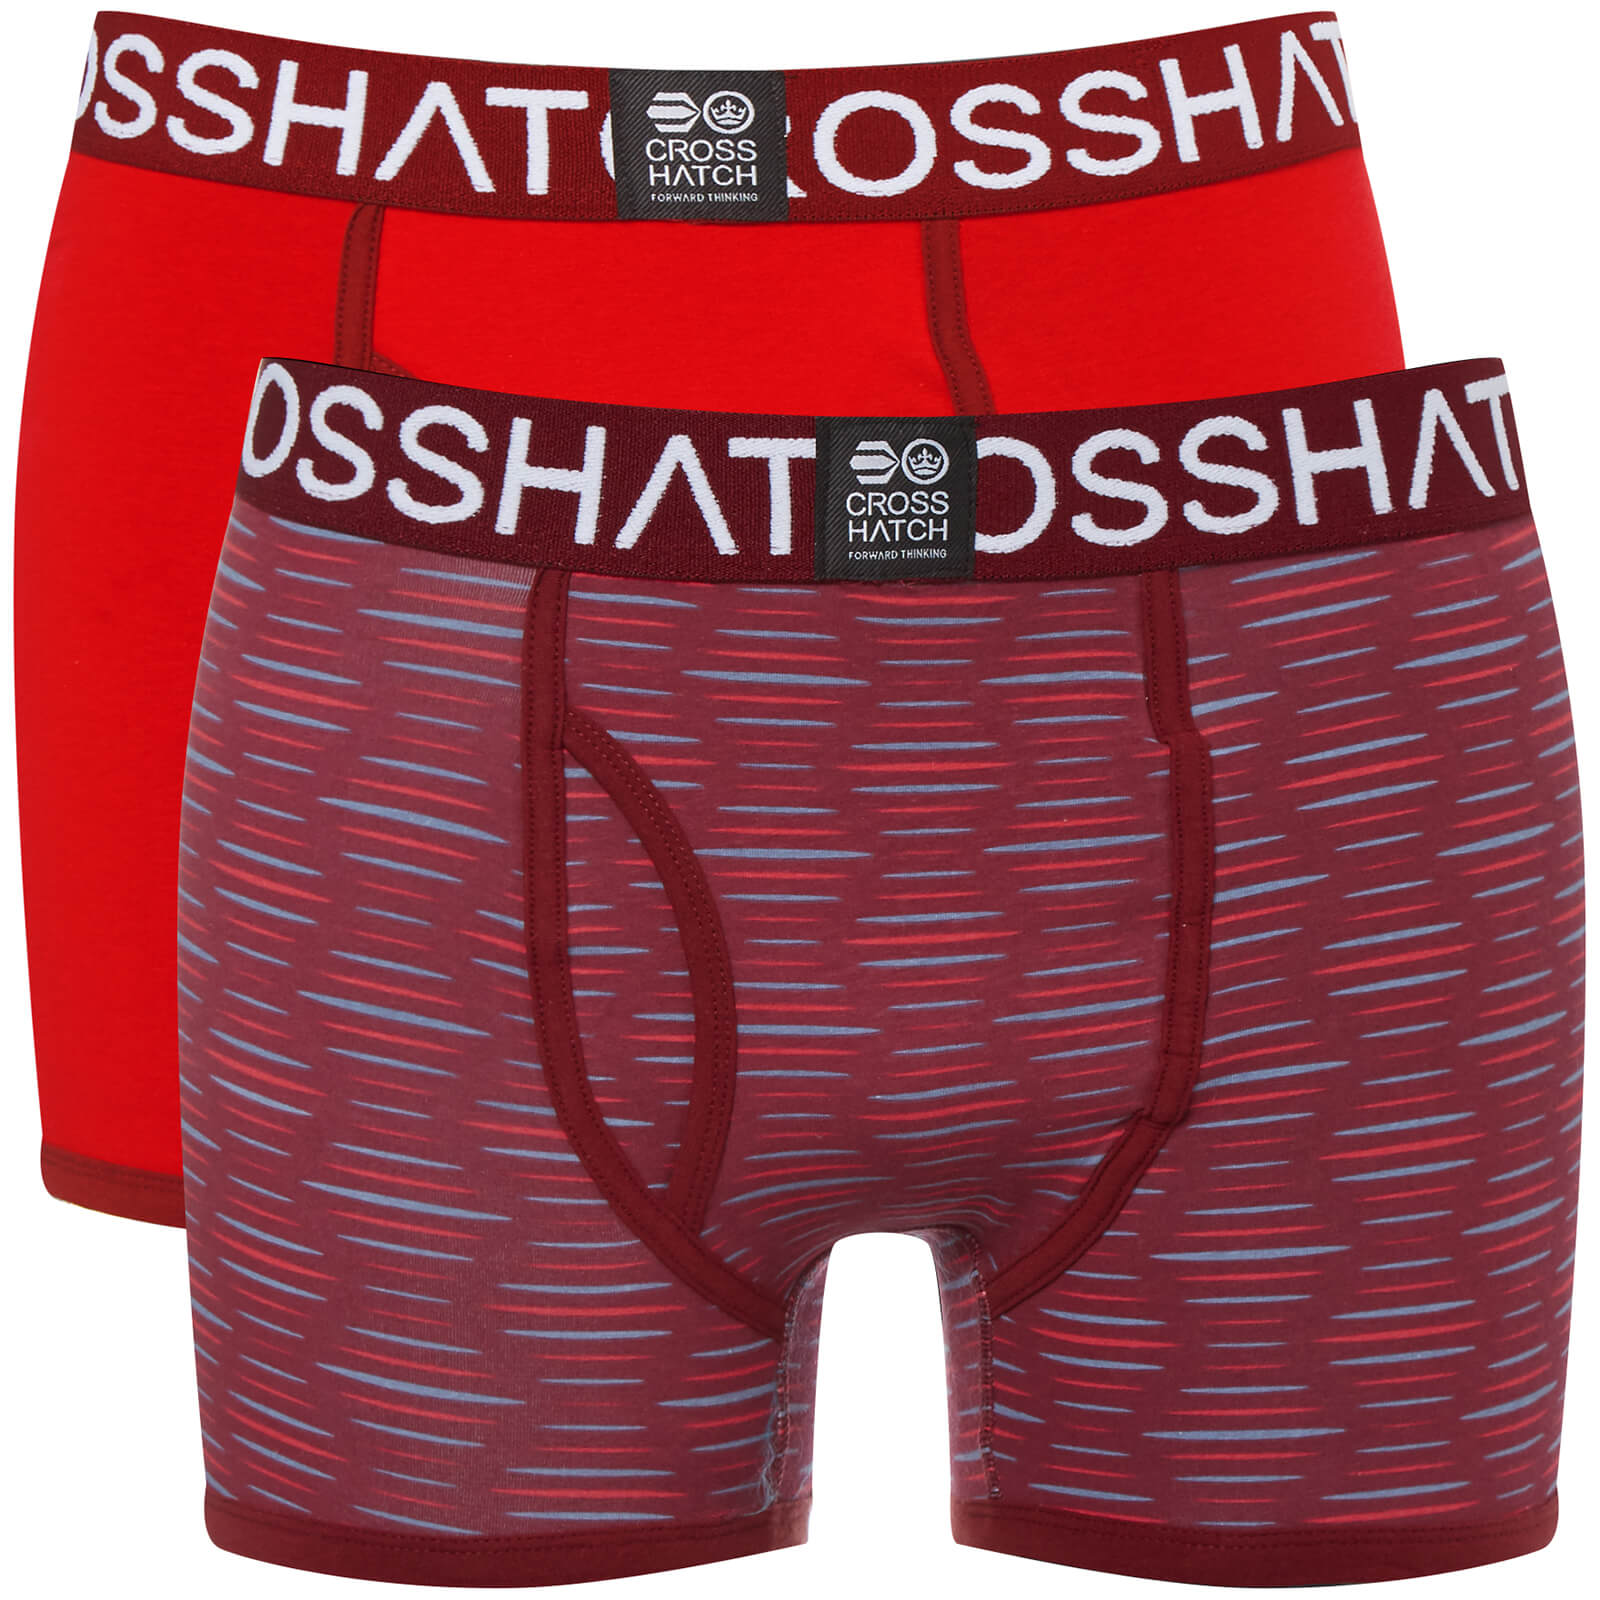 Lot de 2 Boxers Syntho Crosshatch - Rouge Cerise